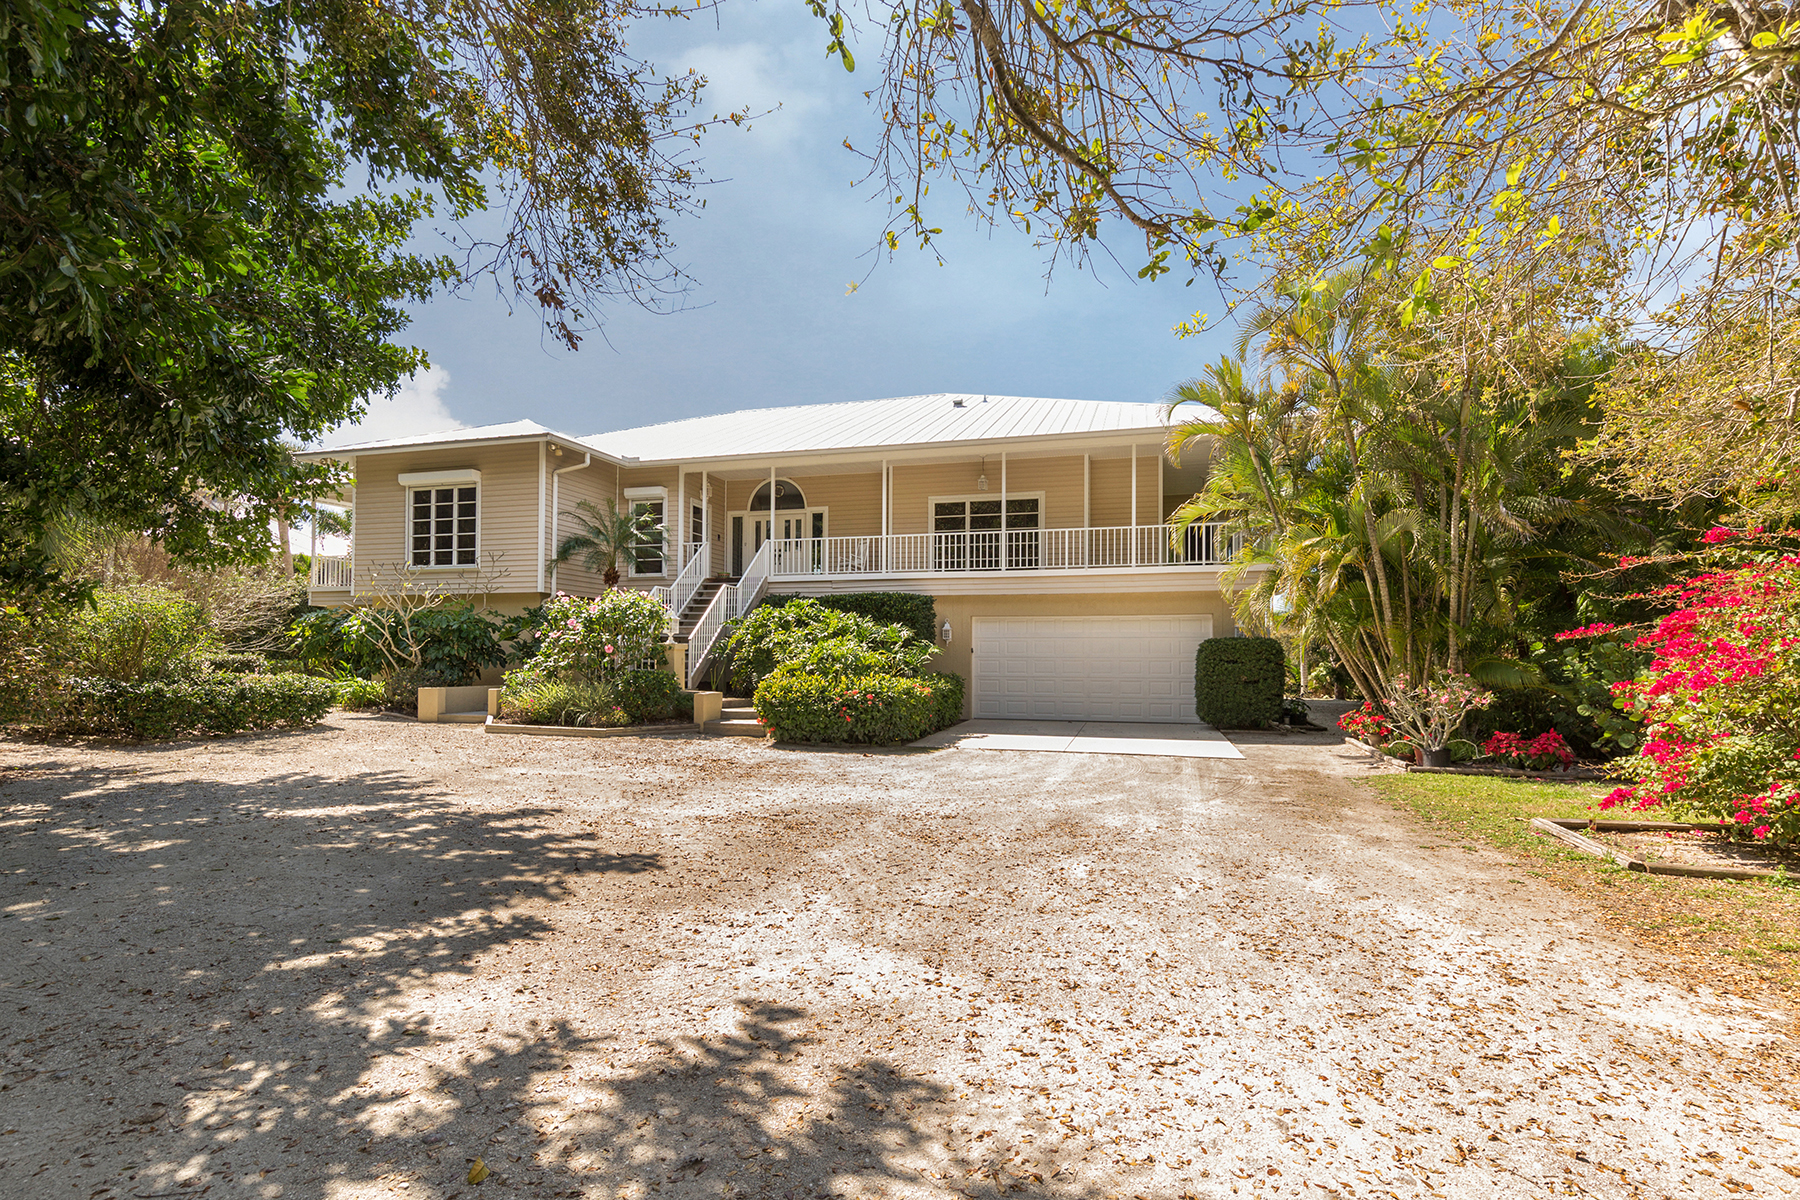 Single Family Home for Sale at VENICE ISLAND 938 Sunset Dr, Venice, Florida 34285 United States